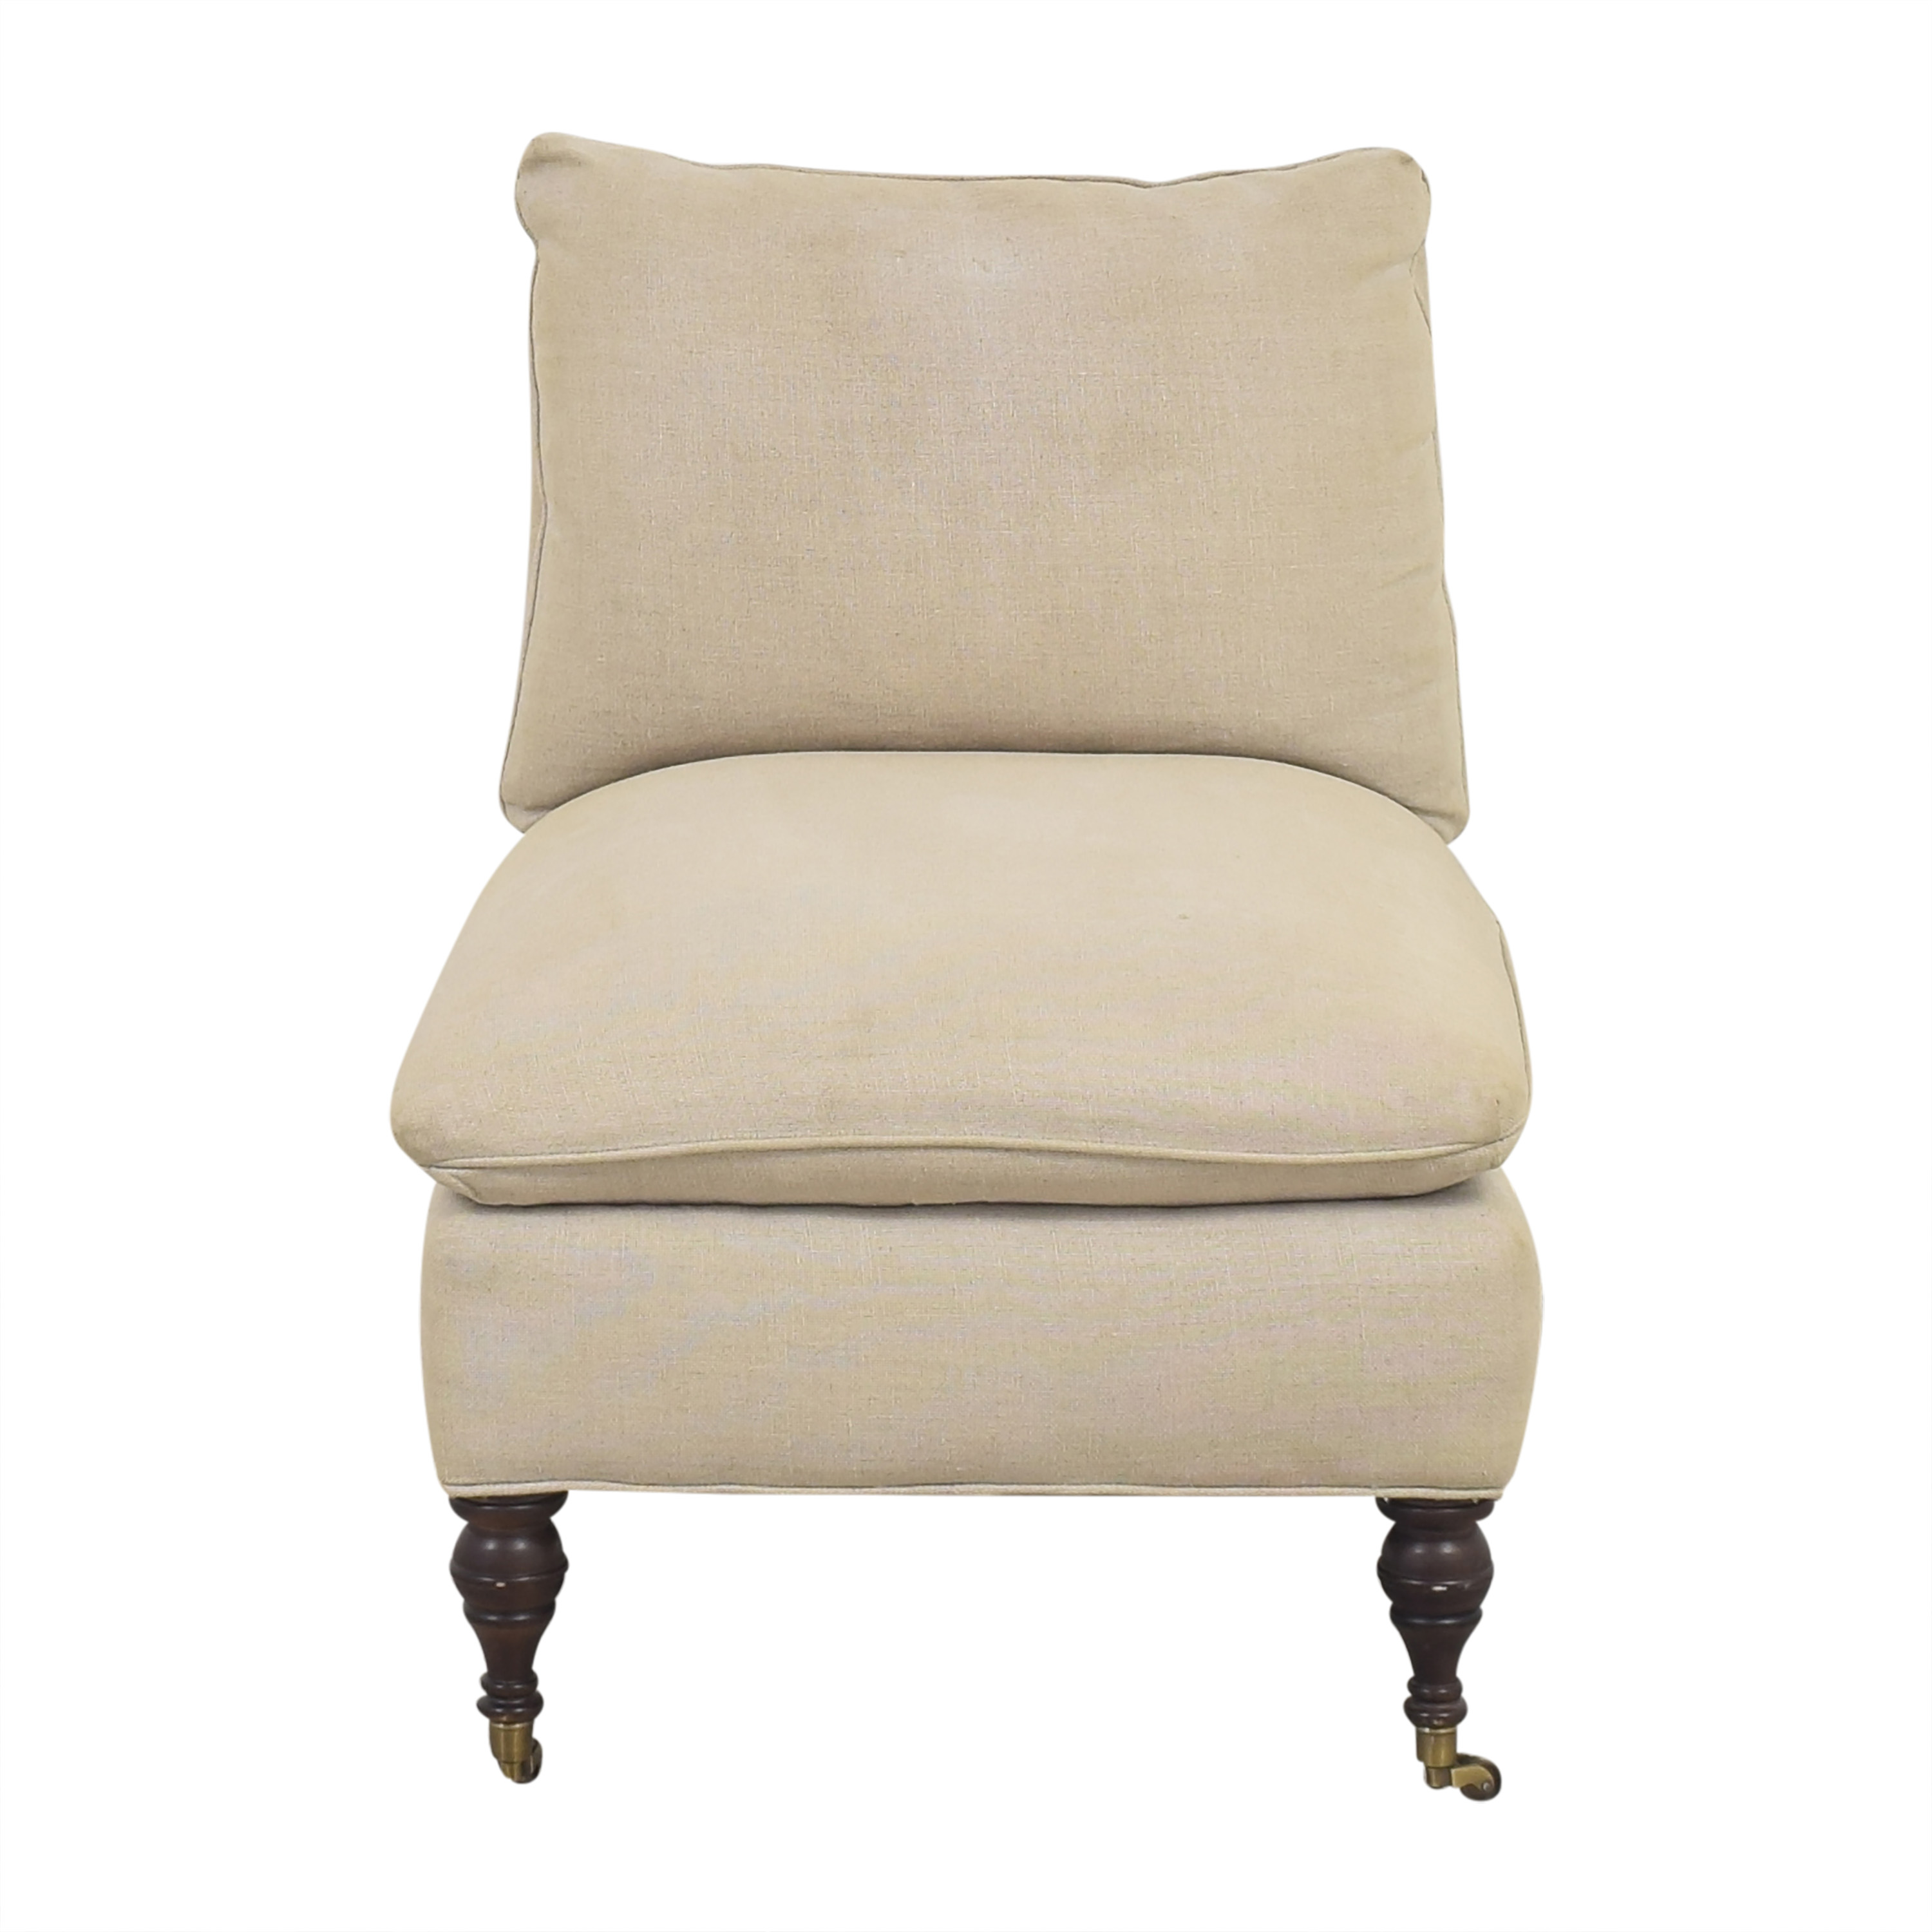 shop Mitchell Gold + Bob Williams Slipper Chair Mitchell Gold + Bob Williams Accent Chairs